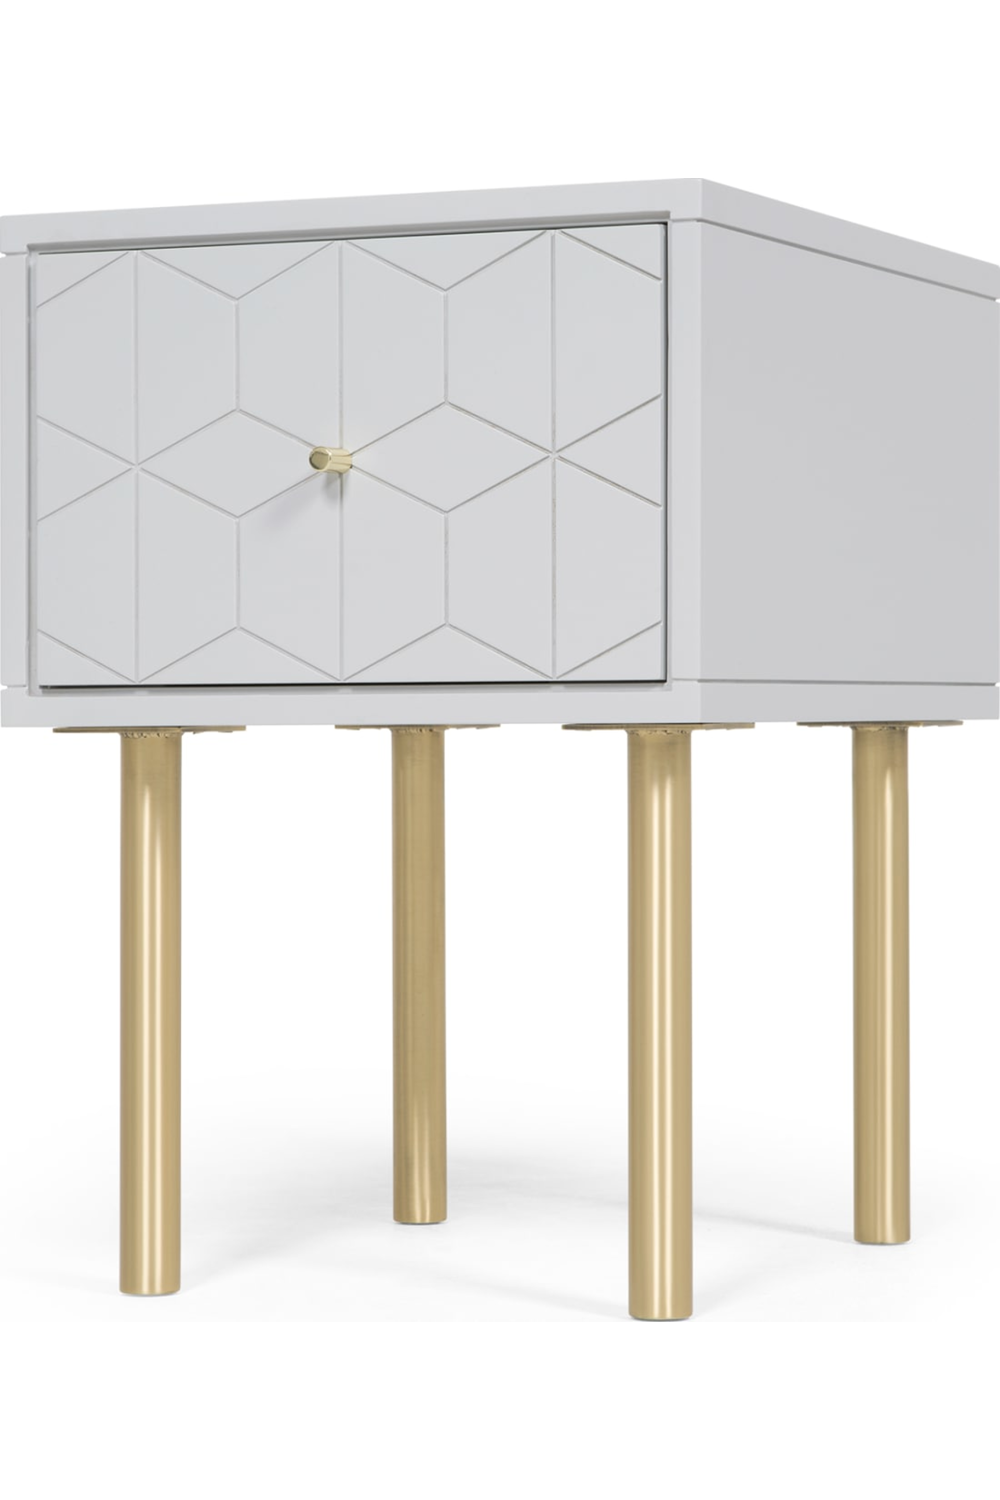 Grey Bedside Tables: Hedra Bedside Table, Grey And Brass In 2020 (With Images